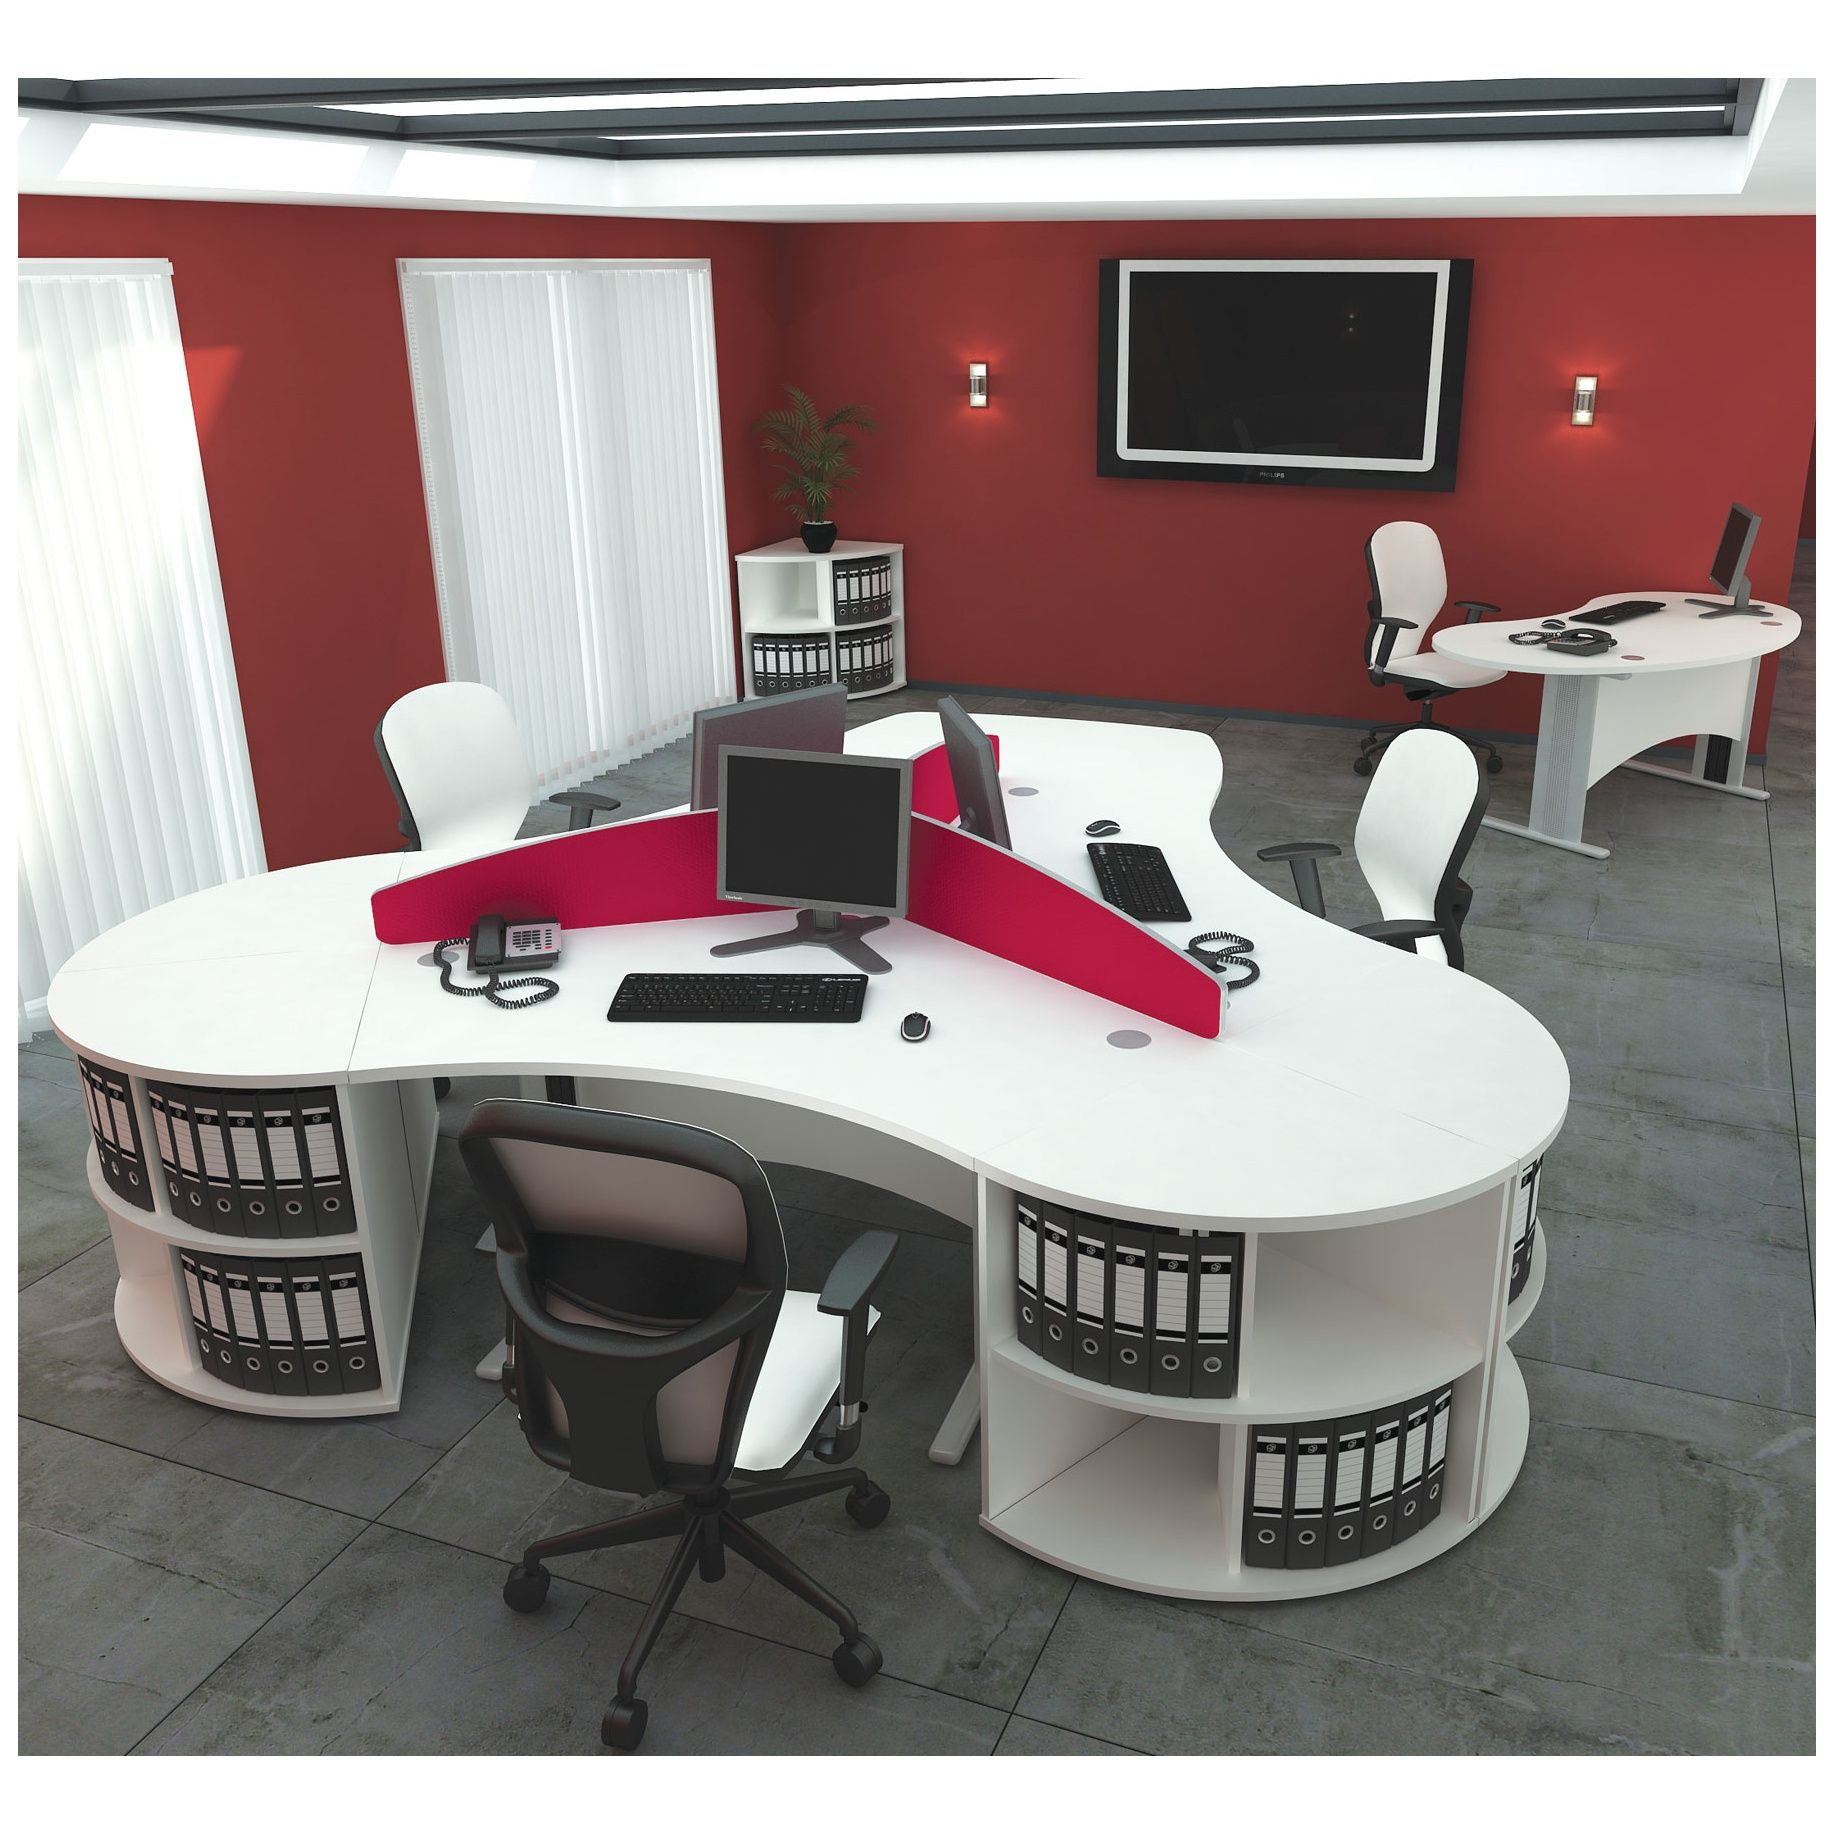 Accolade Cluster Desks Cheap Accolade Cluster Desks From Our